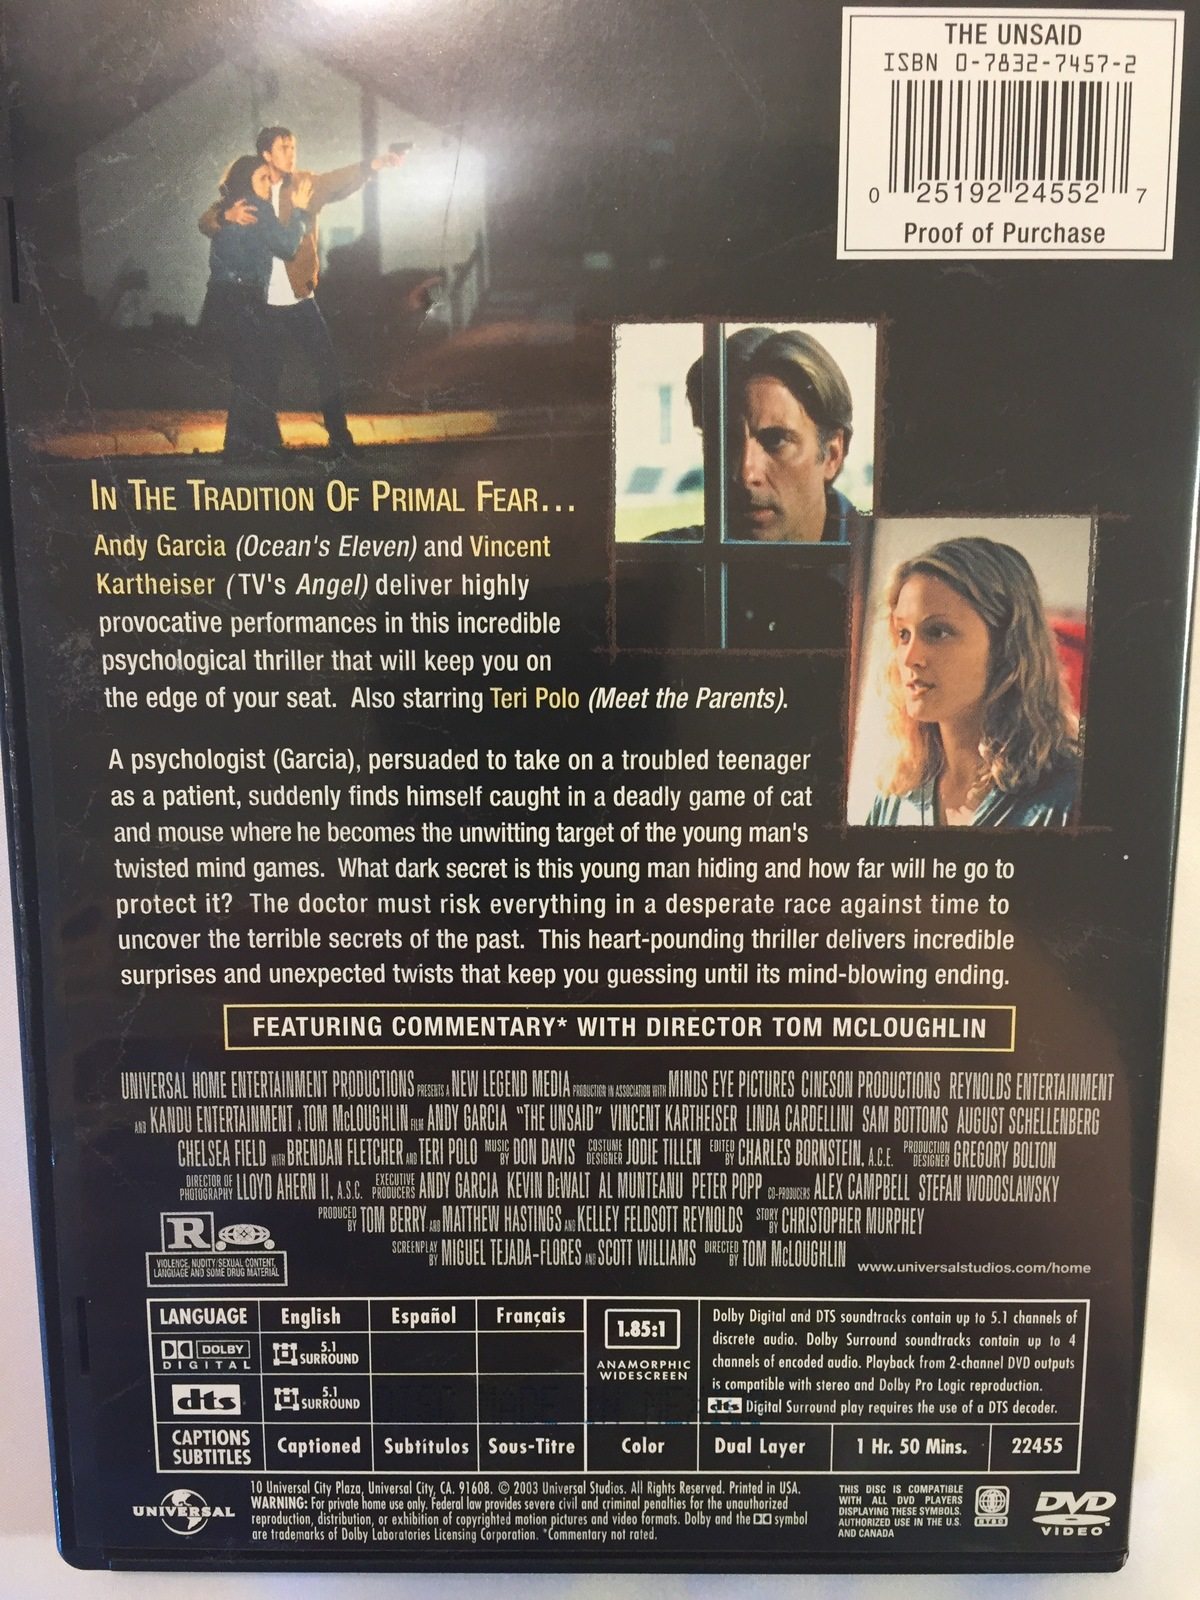 The Unsaid (2001) DVD. Region 1. Rated R, 110 minutes. Color.